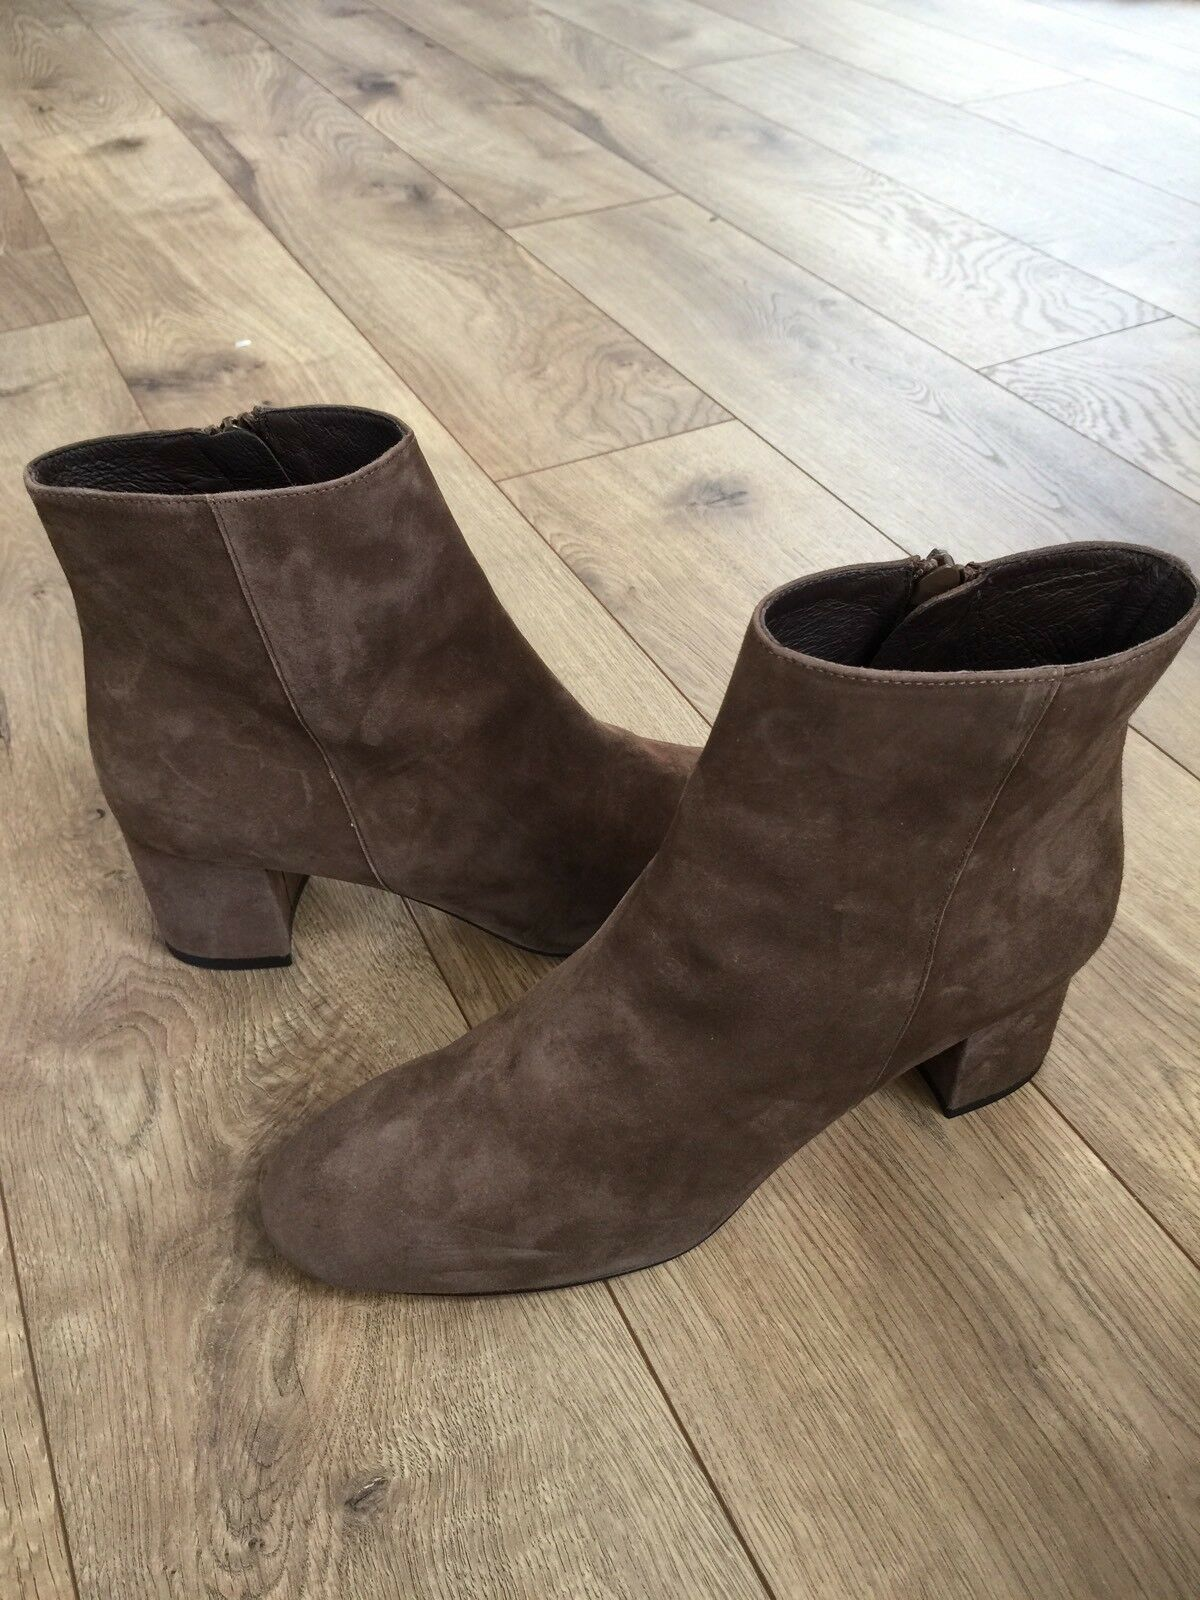 NEW JCREW  228 Hadley Suede Boots Size 10 10 10 Pony Brown G8118 10df42